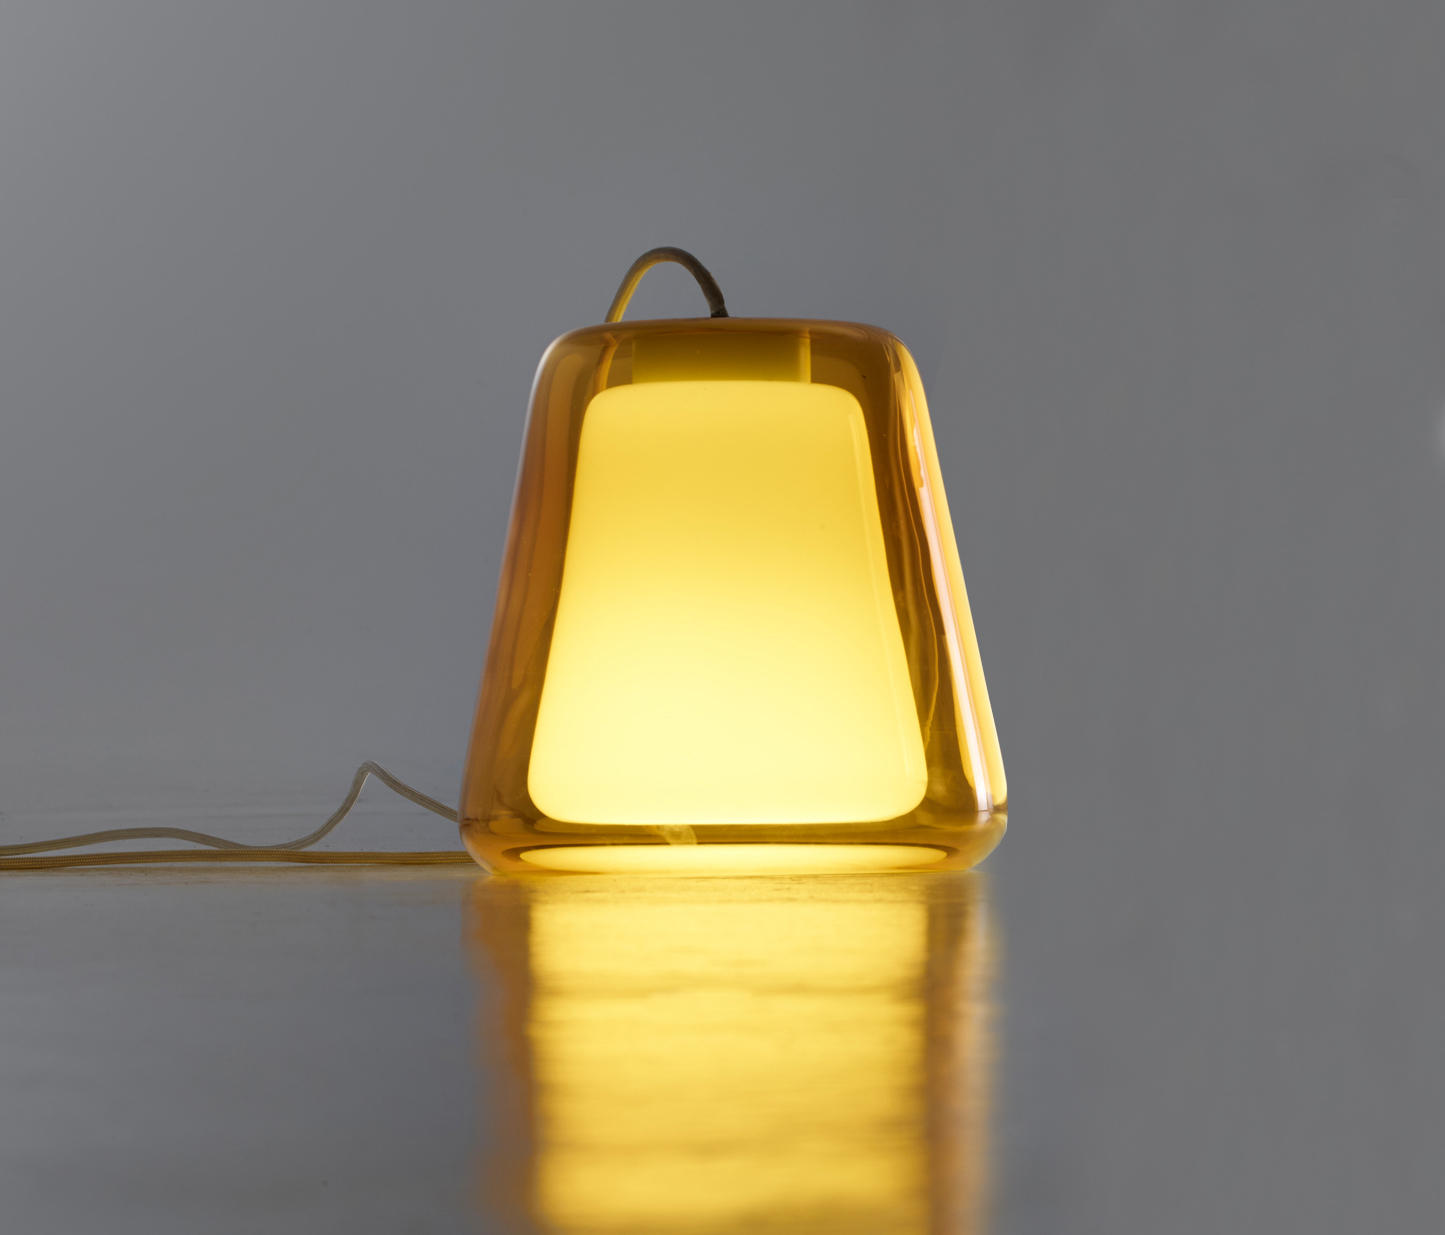 The lovers lamp small table lights from peruse architonic the lovers lamp small by peruse table lights aloadofball Gallery